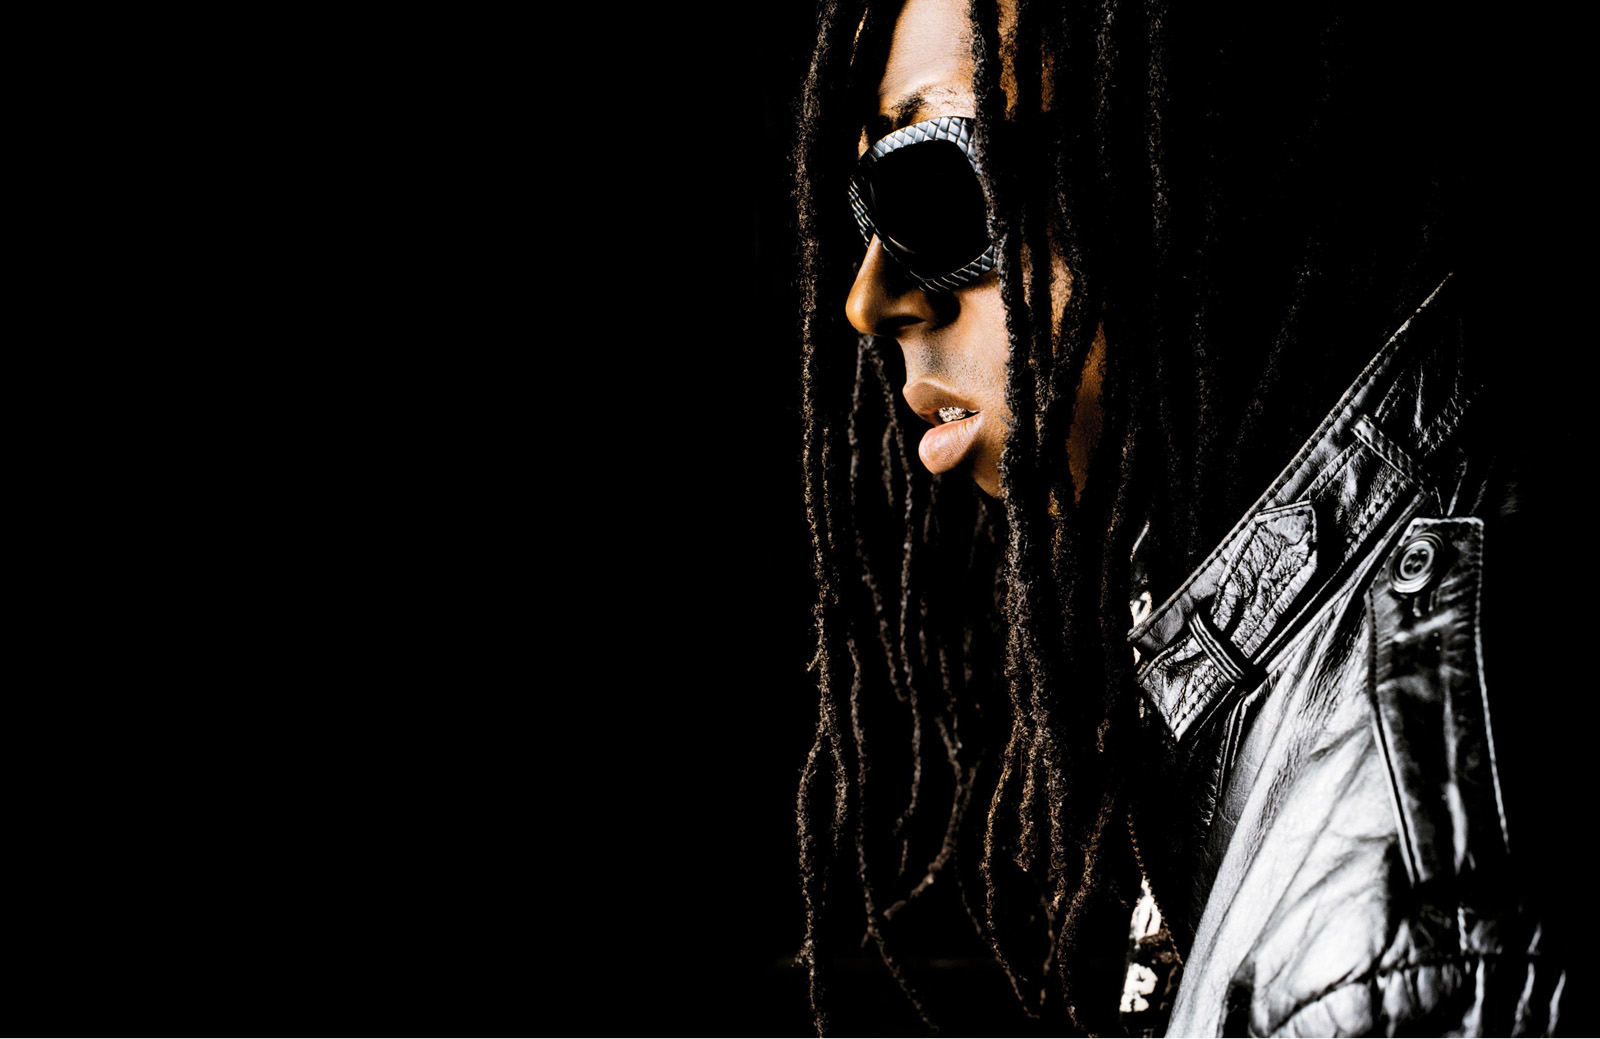 http://3.bp.blogspot.com/-s1YNZu11ddA/TnnhjJPhZDI/AAAAAAAADOE/tc3Qv3HuRQA/s1600/Lil_Wayne_Sun_Glasses_Dark_Background_Vvallpaper.net.jpg